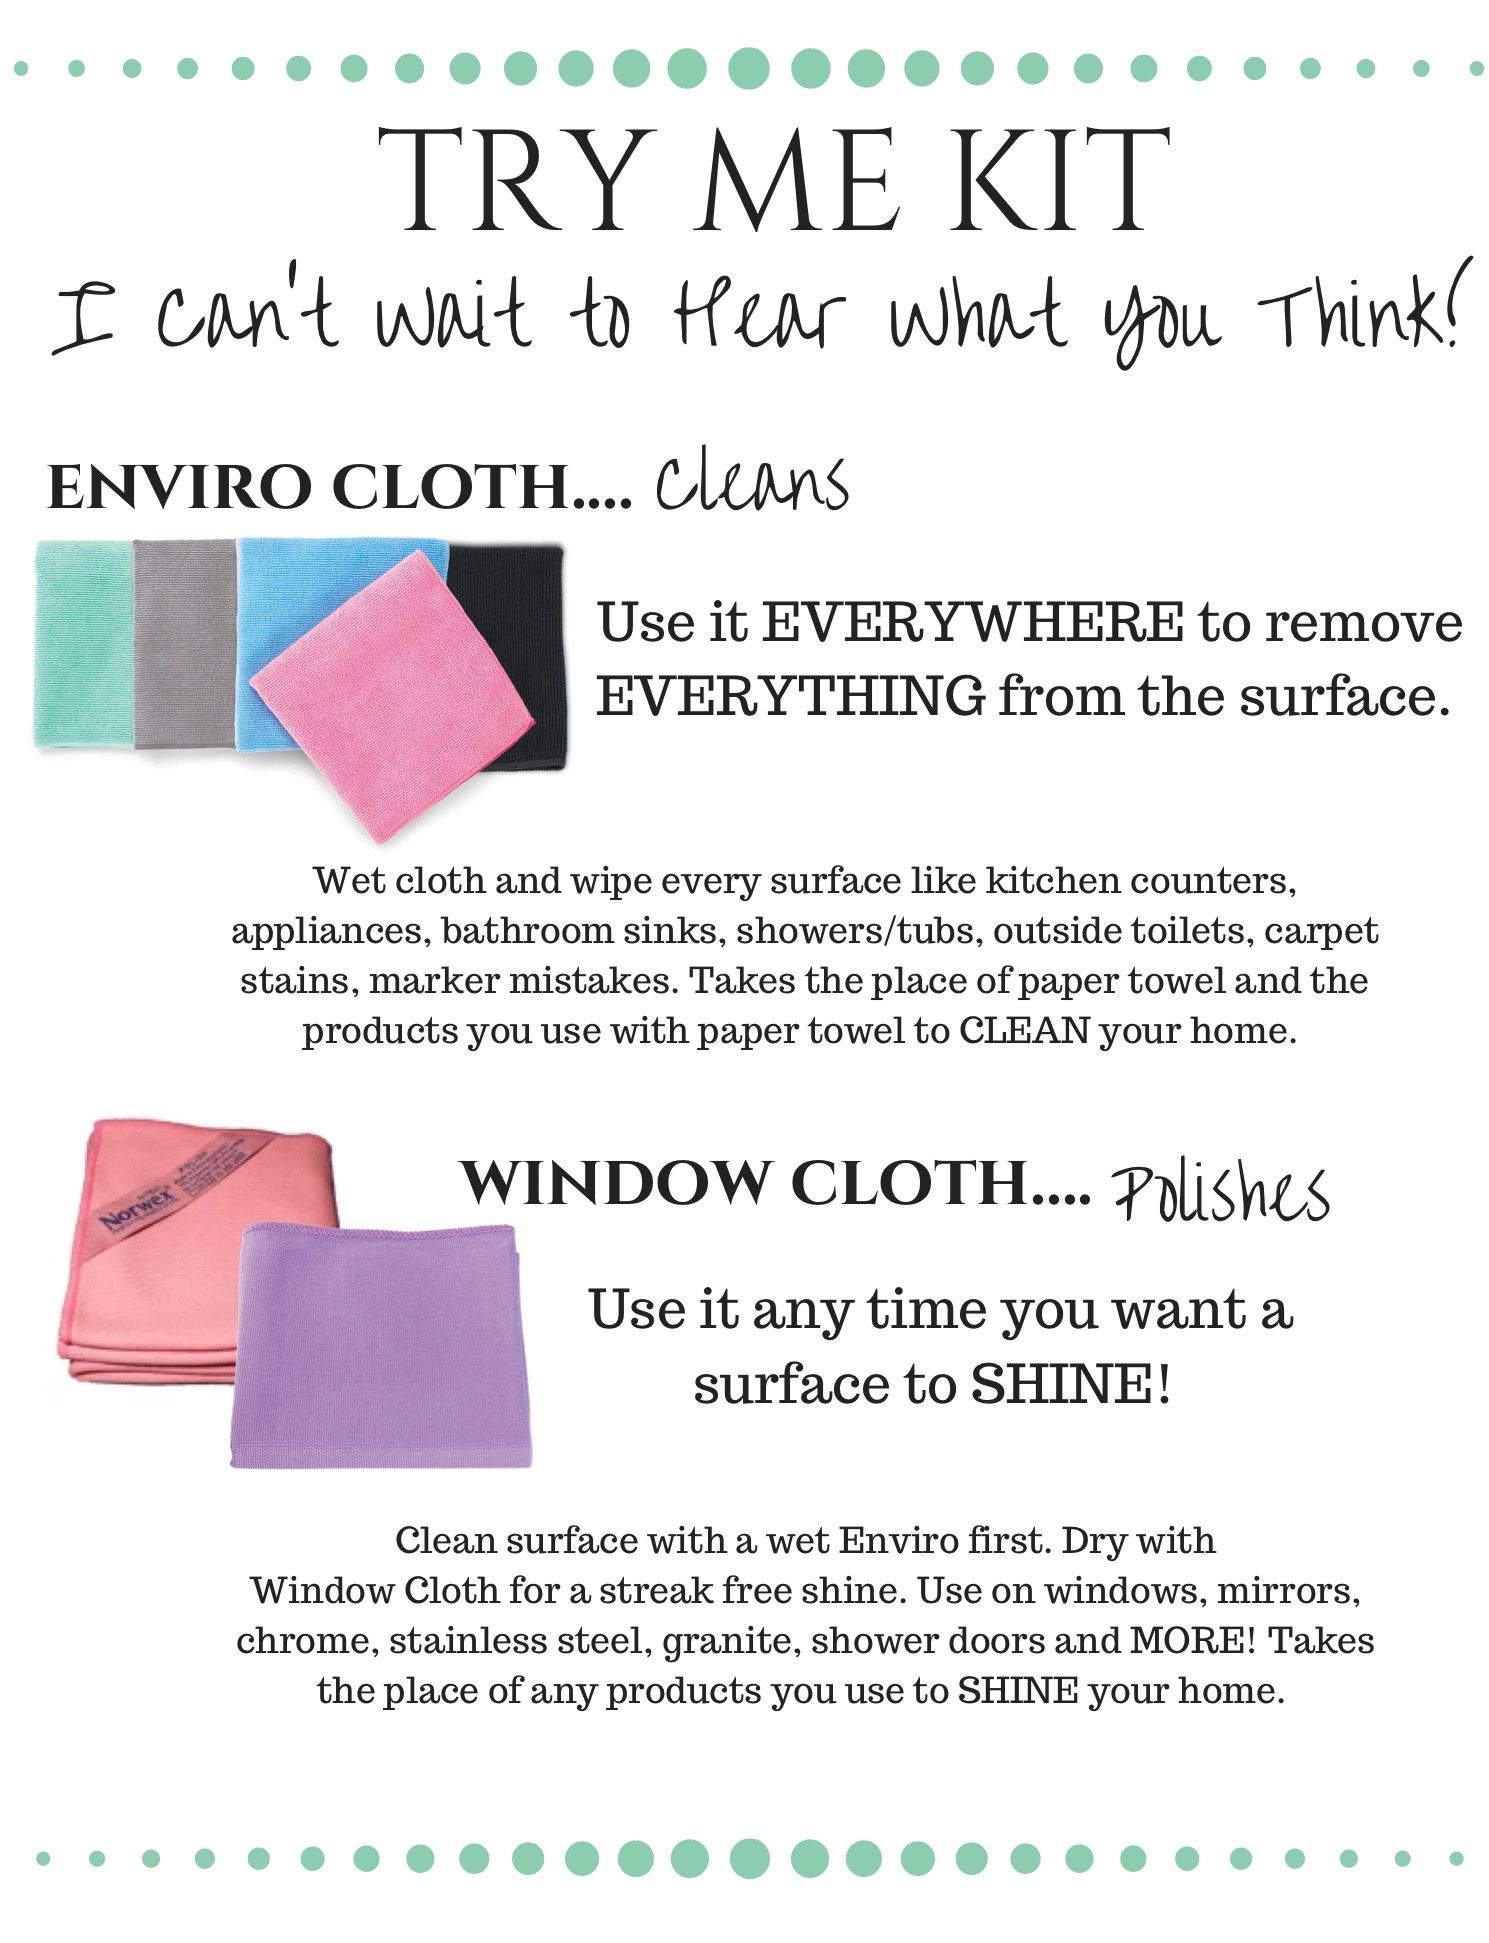 Pin by Teri Worth on Norwex Tips | Pinterest | Norwex consultant ...